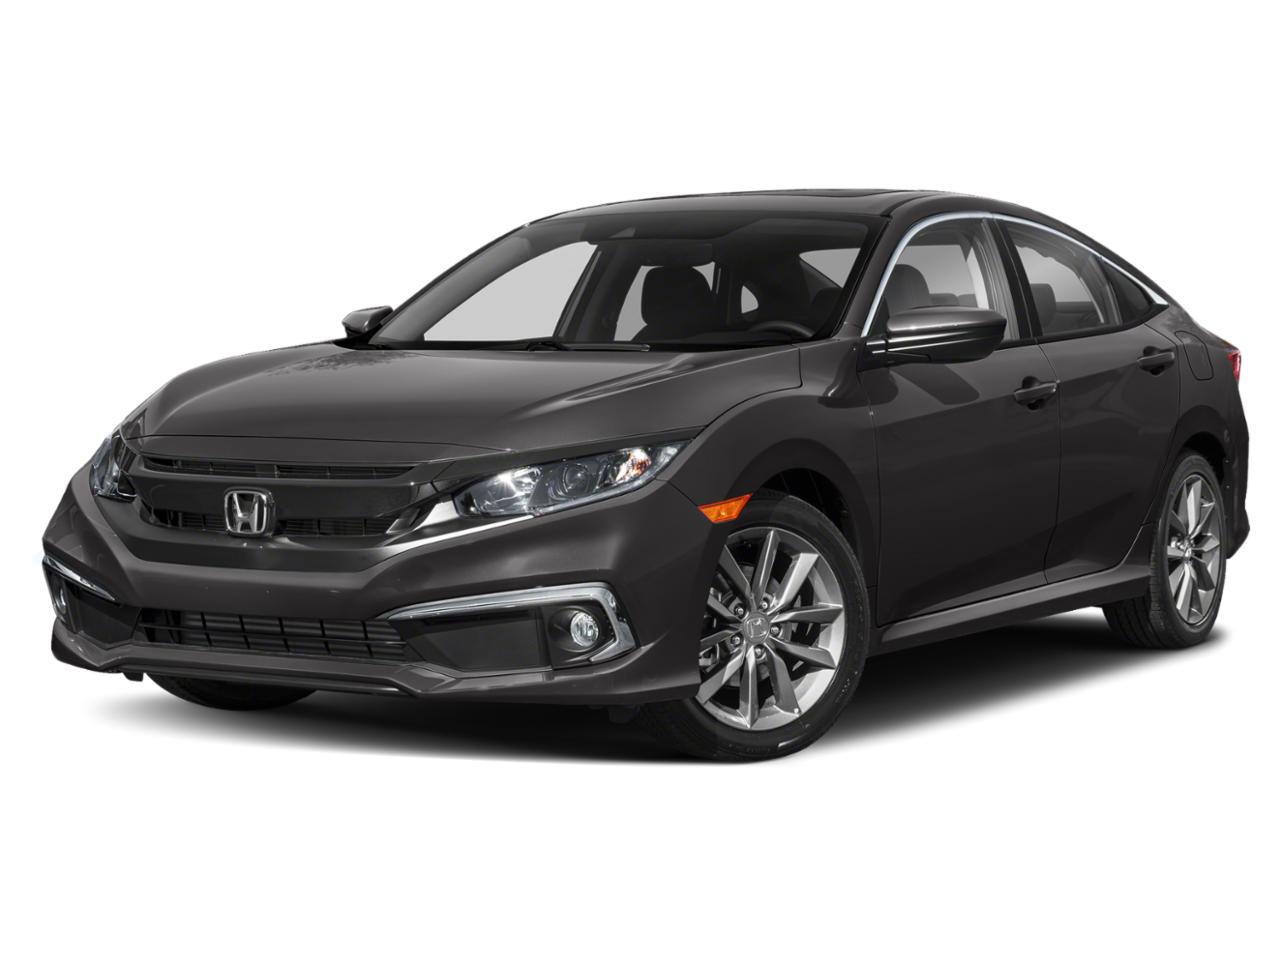 2020 Honda Civic Sedan Vehicle Photo in Owensboro, KY 42302